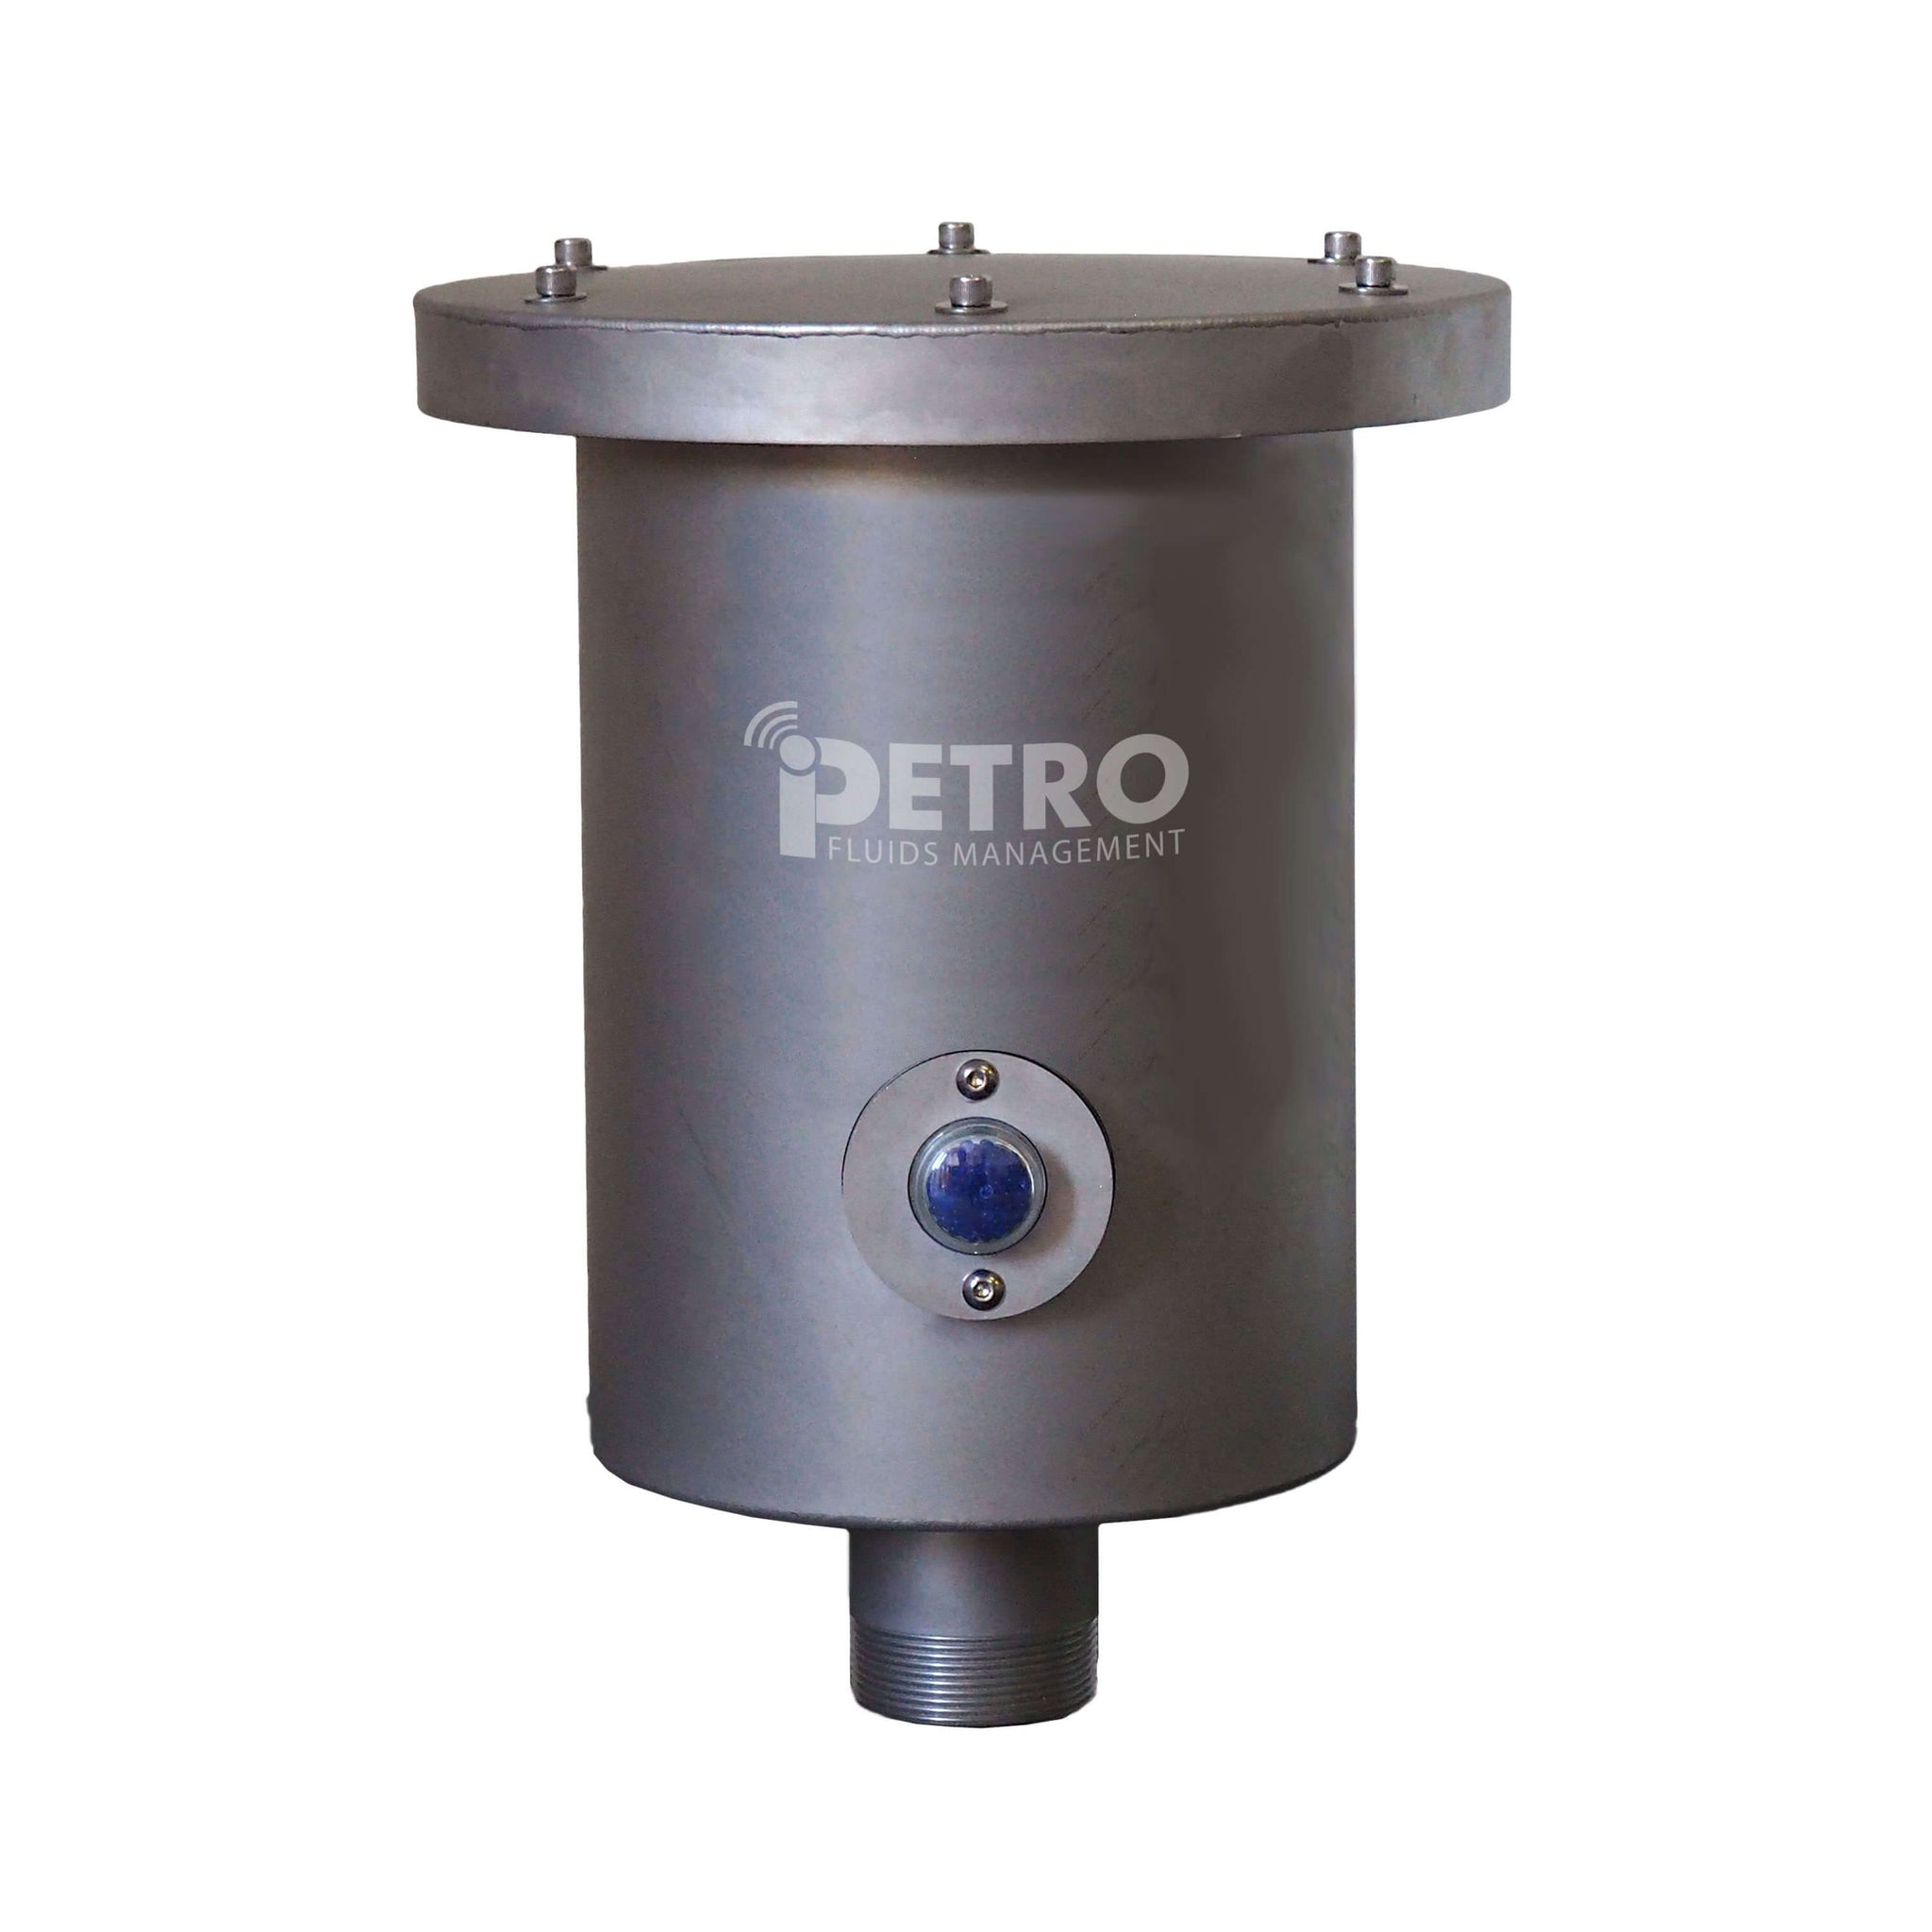 iPETRO Rebuildable Stainless Steel Power Breathers - Filtration - PETRO Industrial